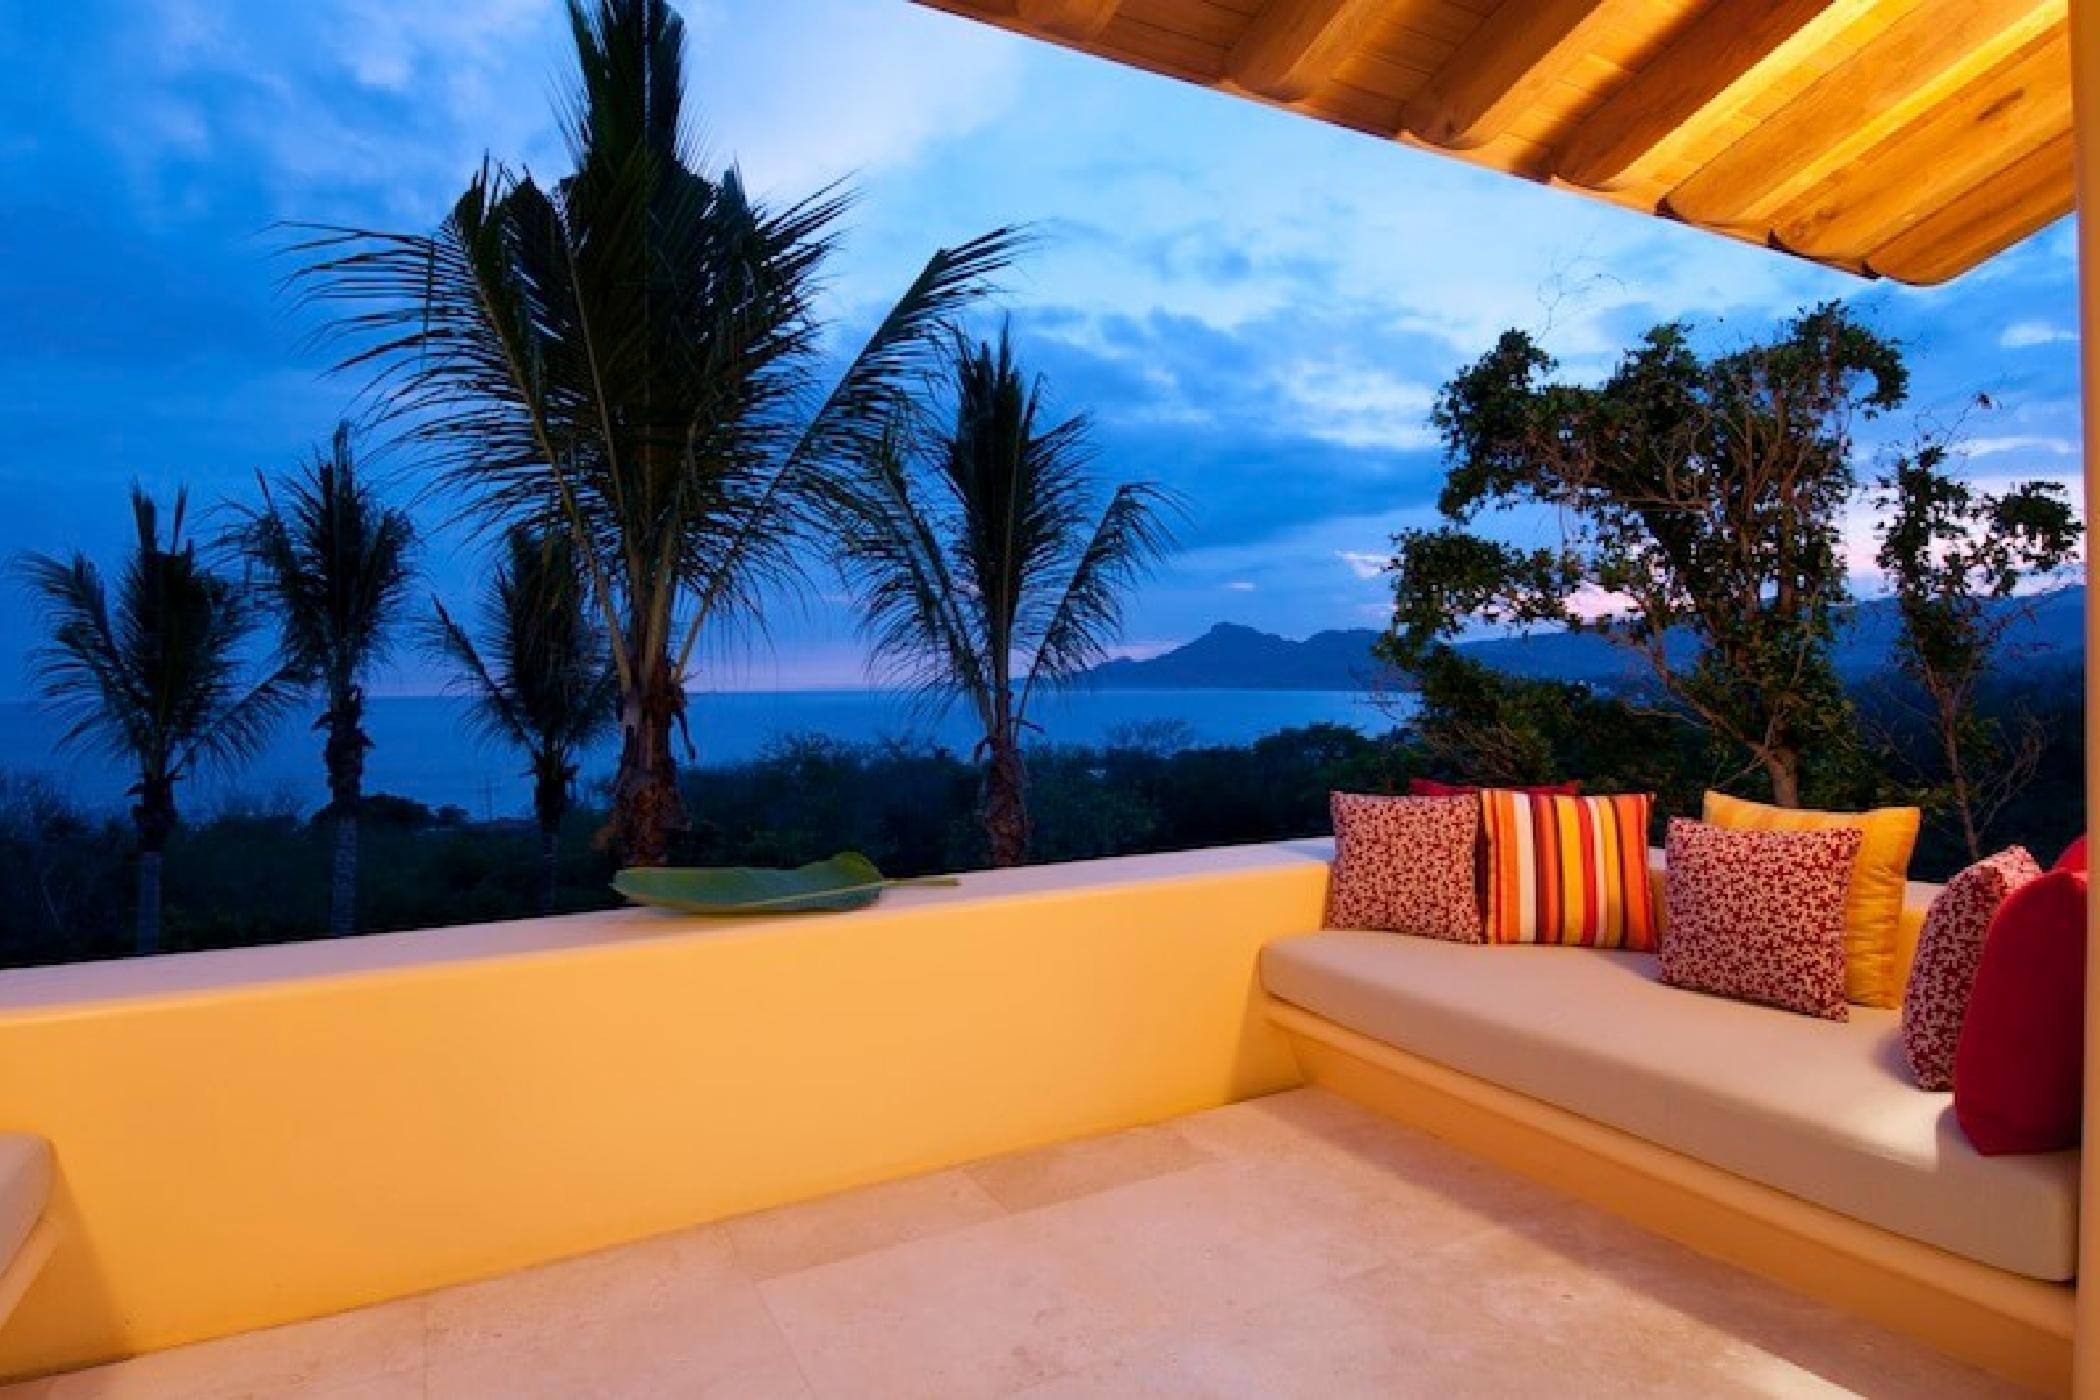 Relax on your own private terrace and enjoy the sunset.